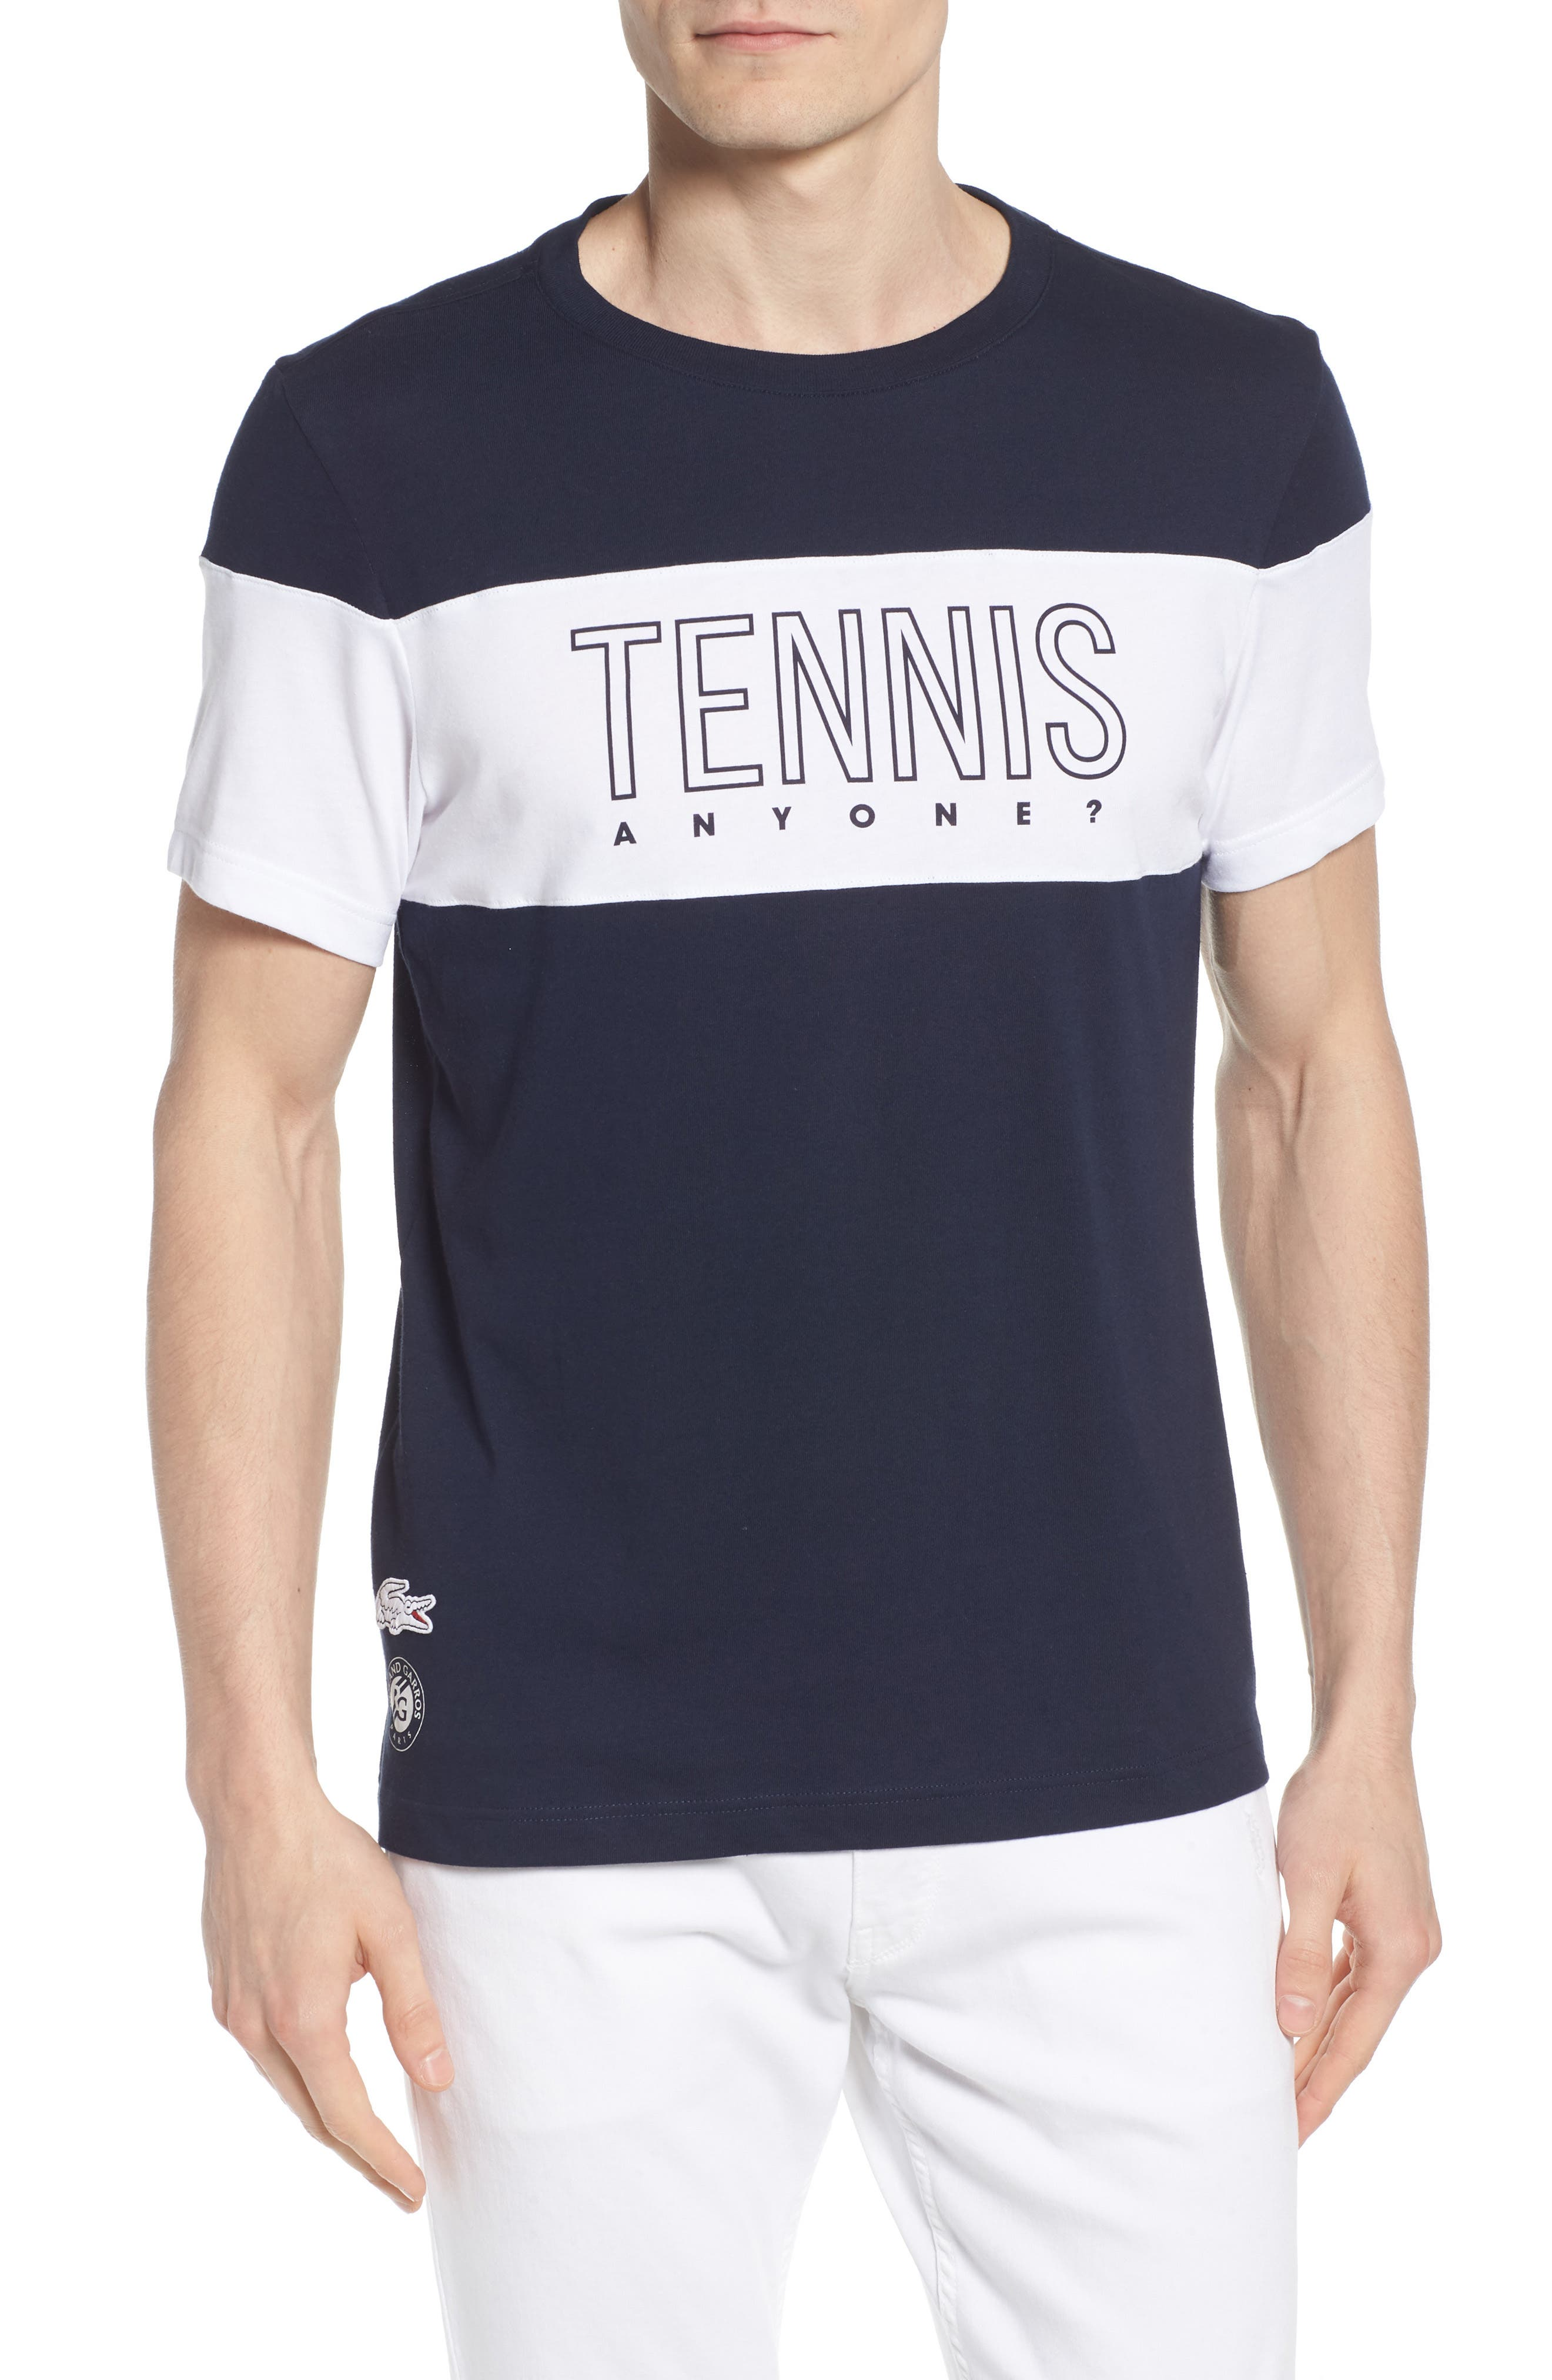 Tennis Anyone Tech Jersey T-Shirt,                         Main,                         color, Navy Blue/ White